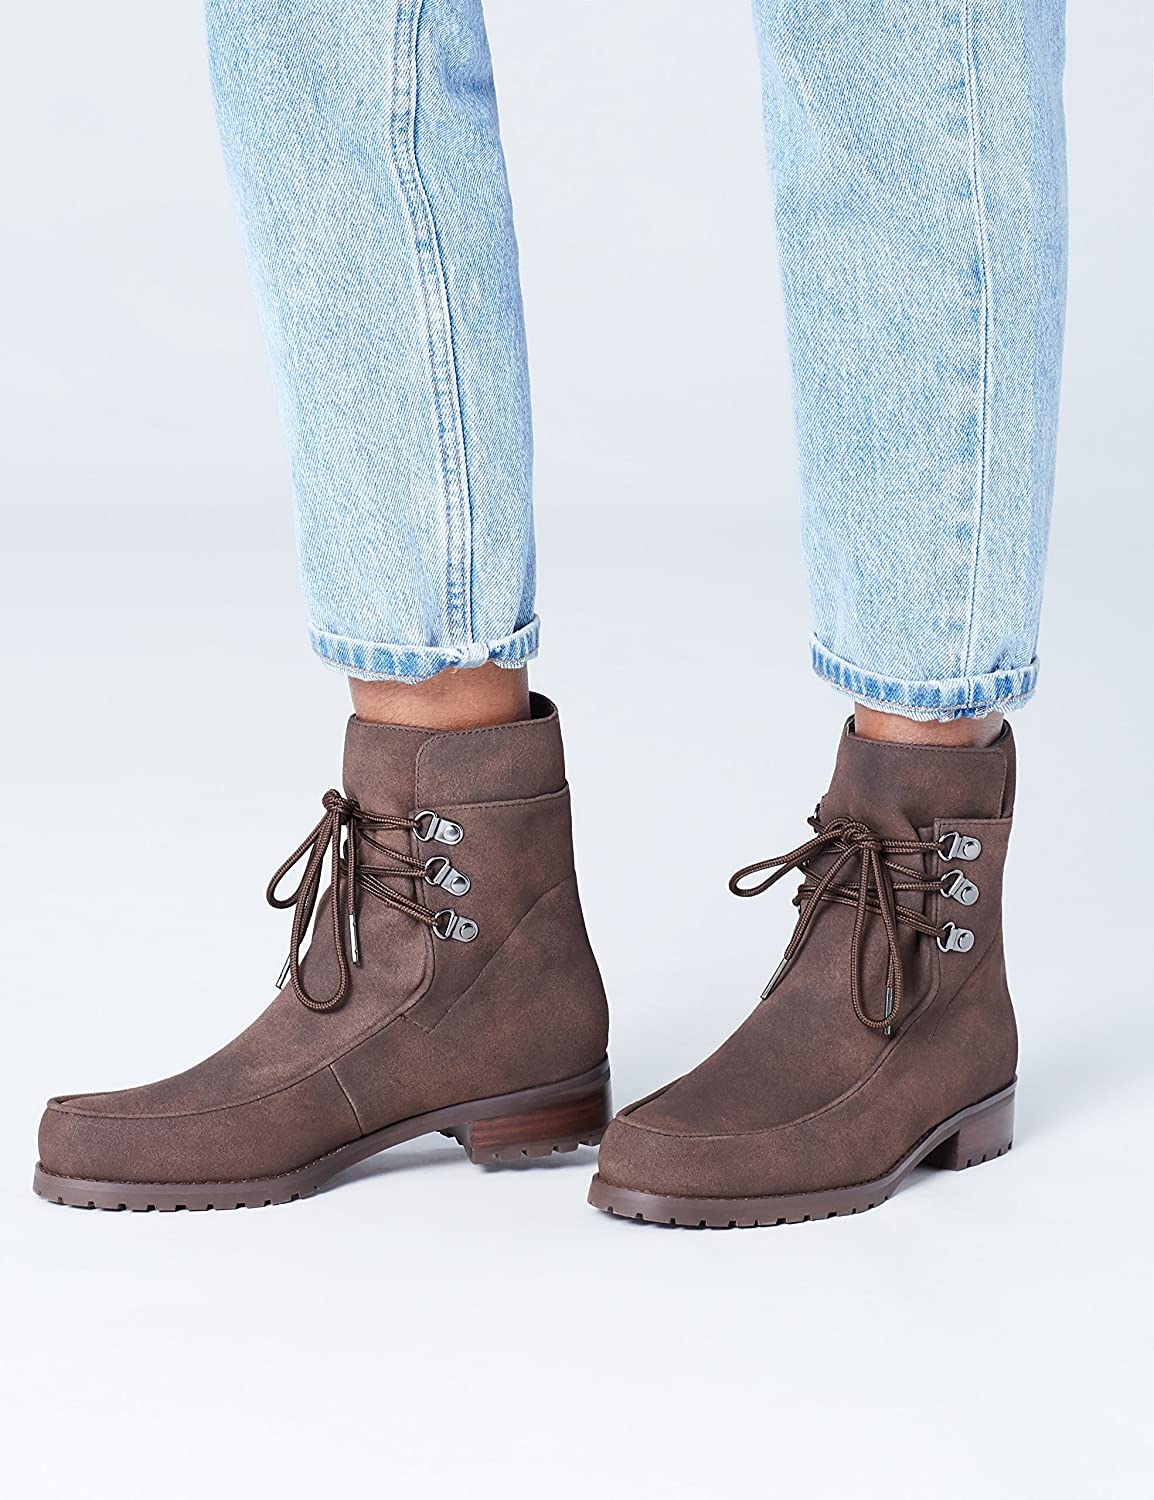 find. Women's Suede-Look Lace-up Hiking Boots